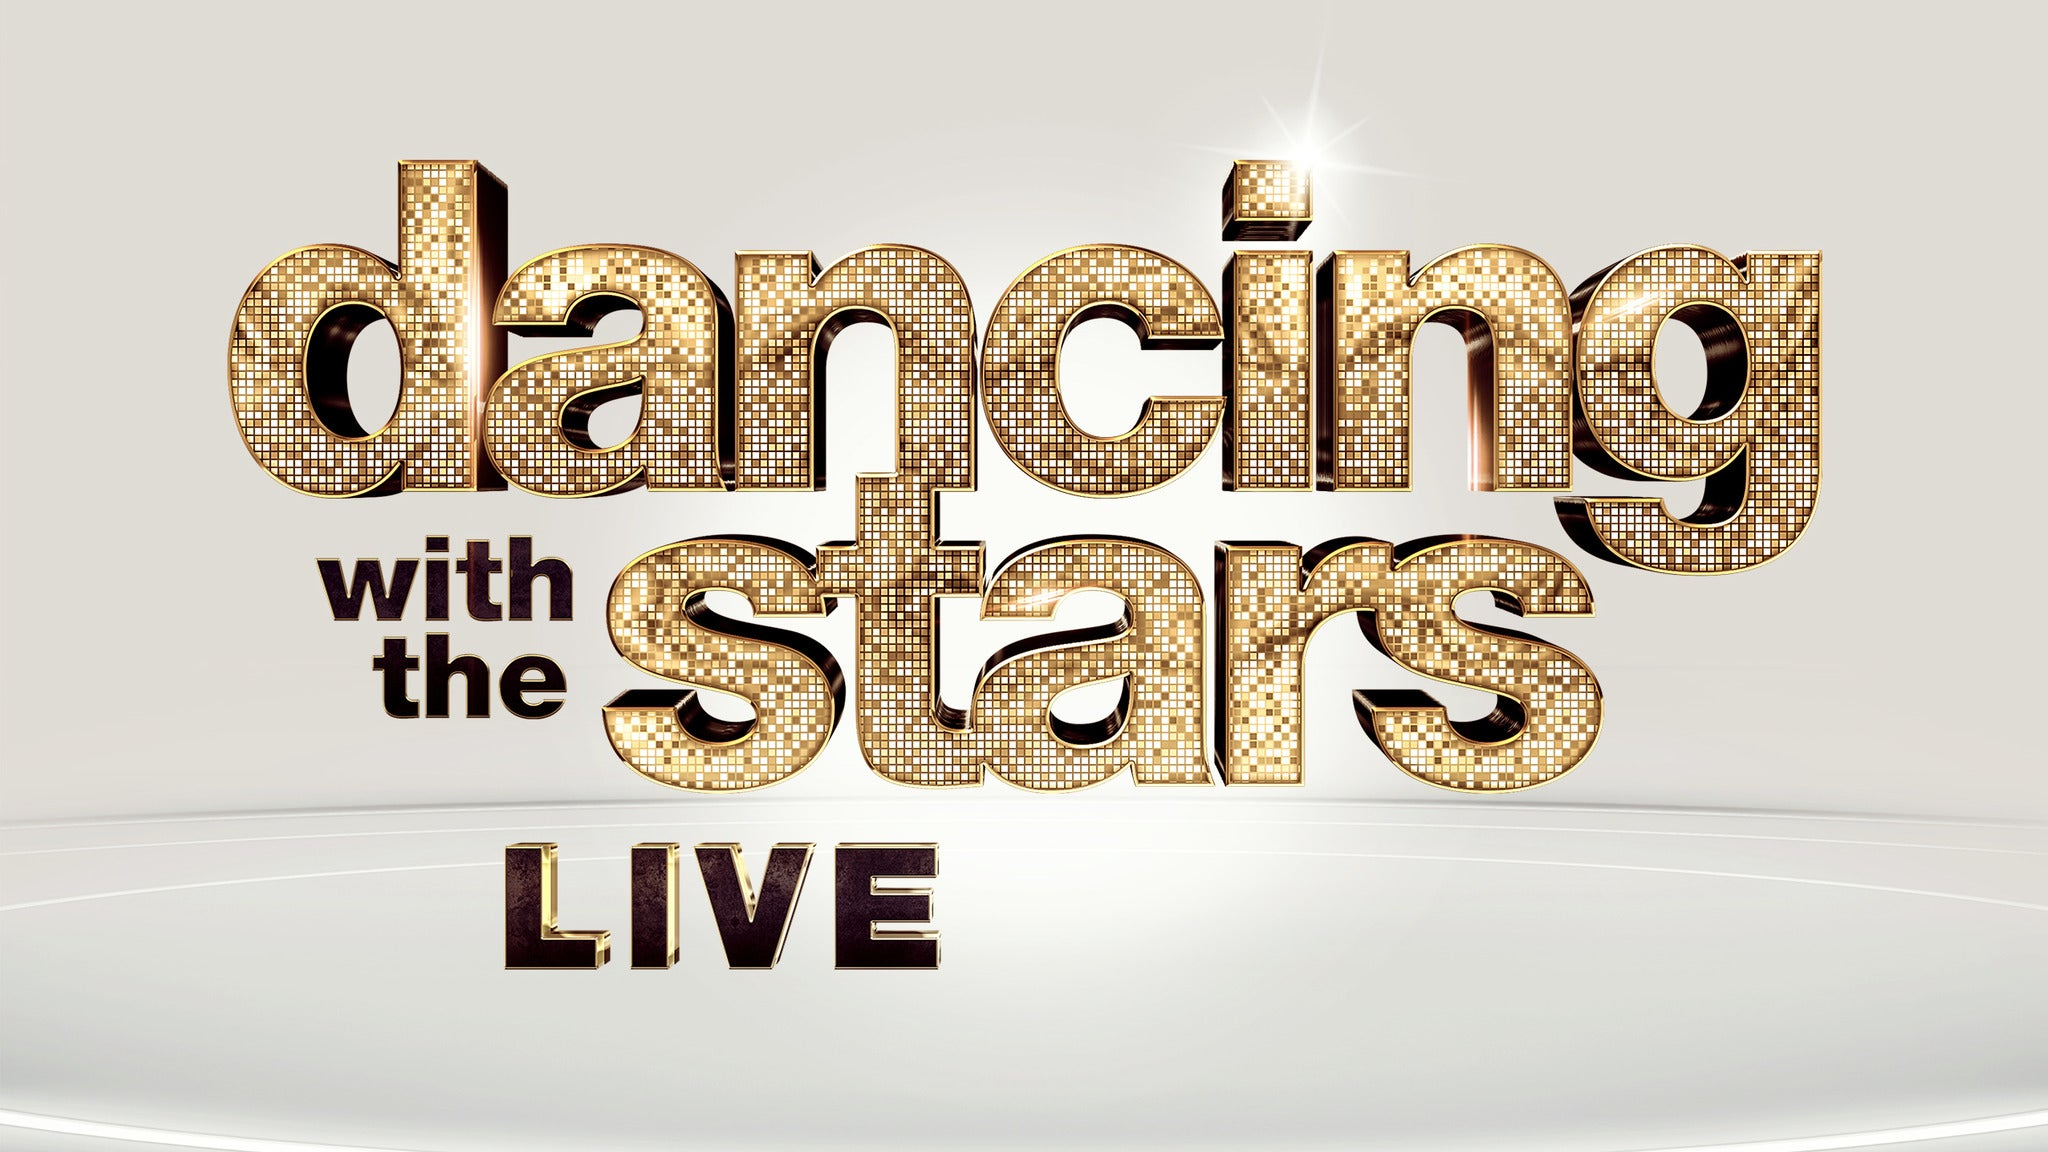 Dancing with the Stars: Live! - 2022 Tour presale password